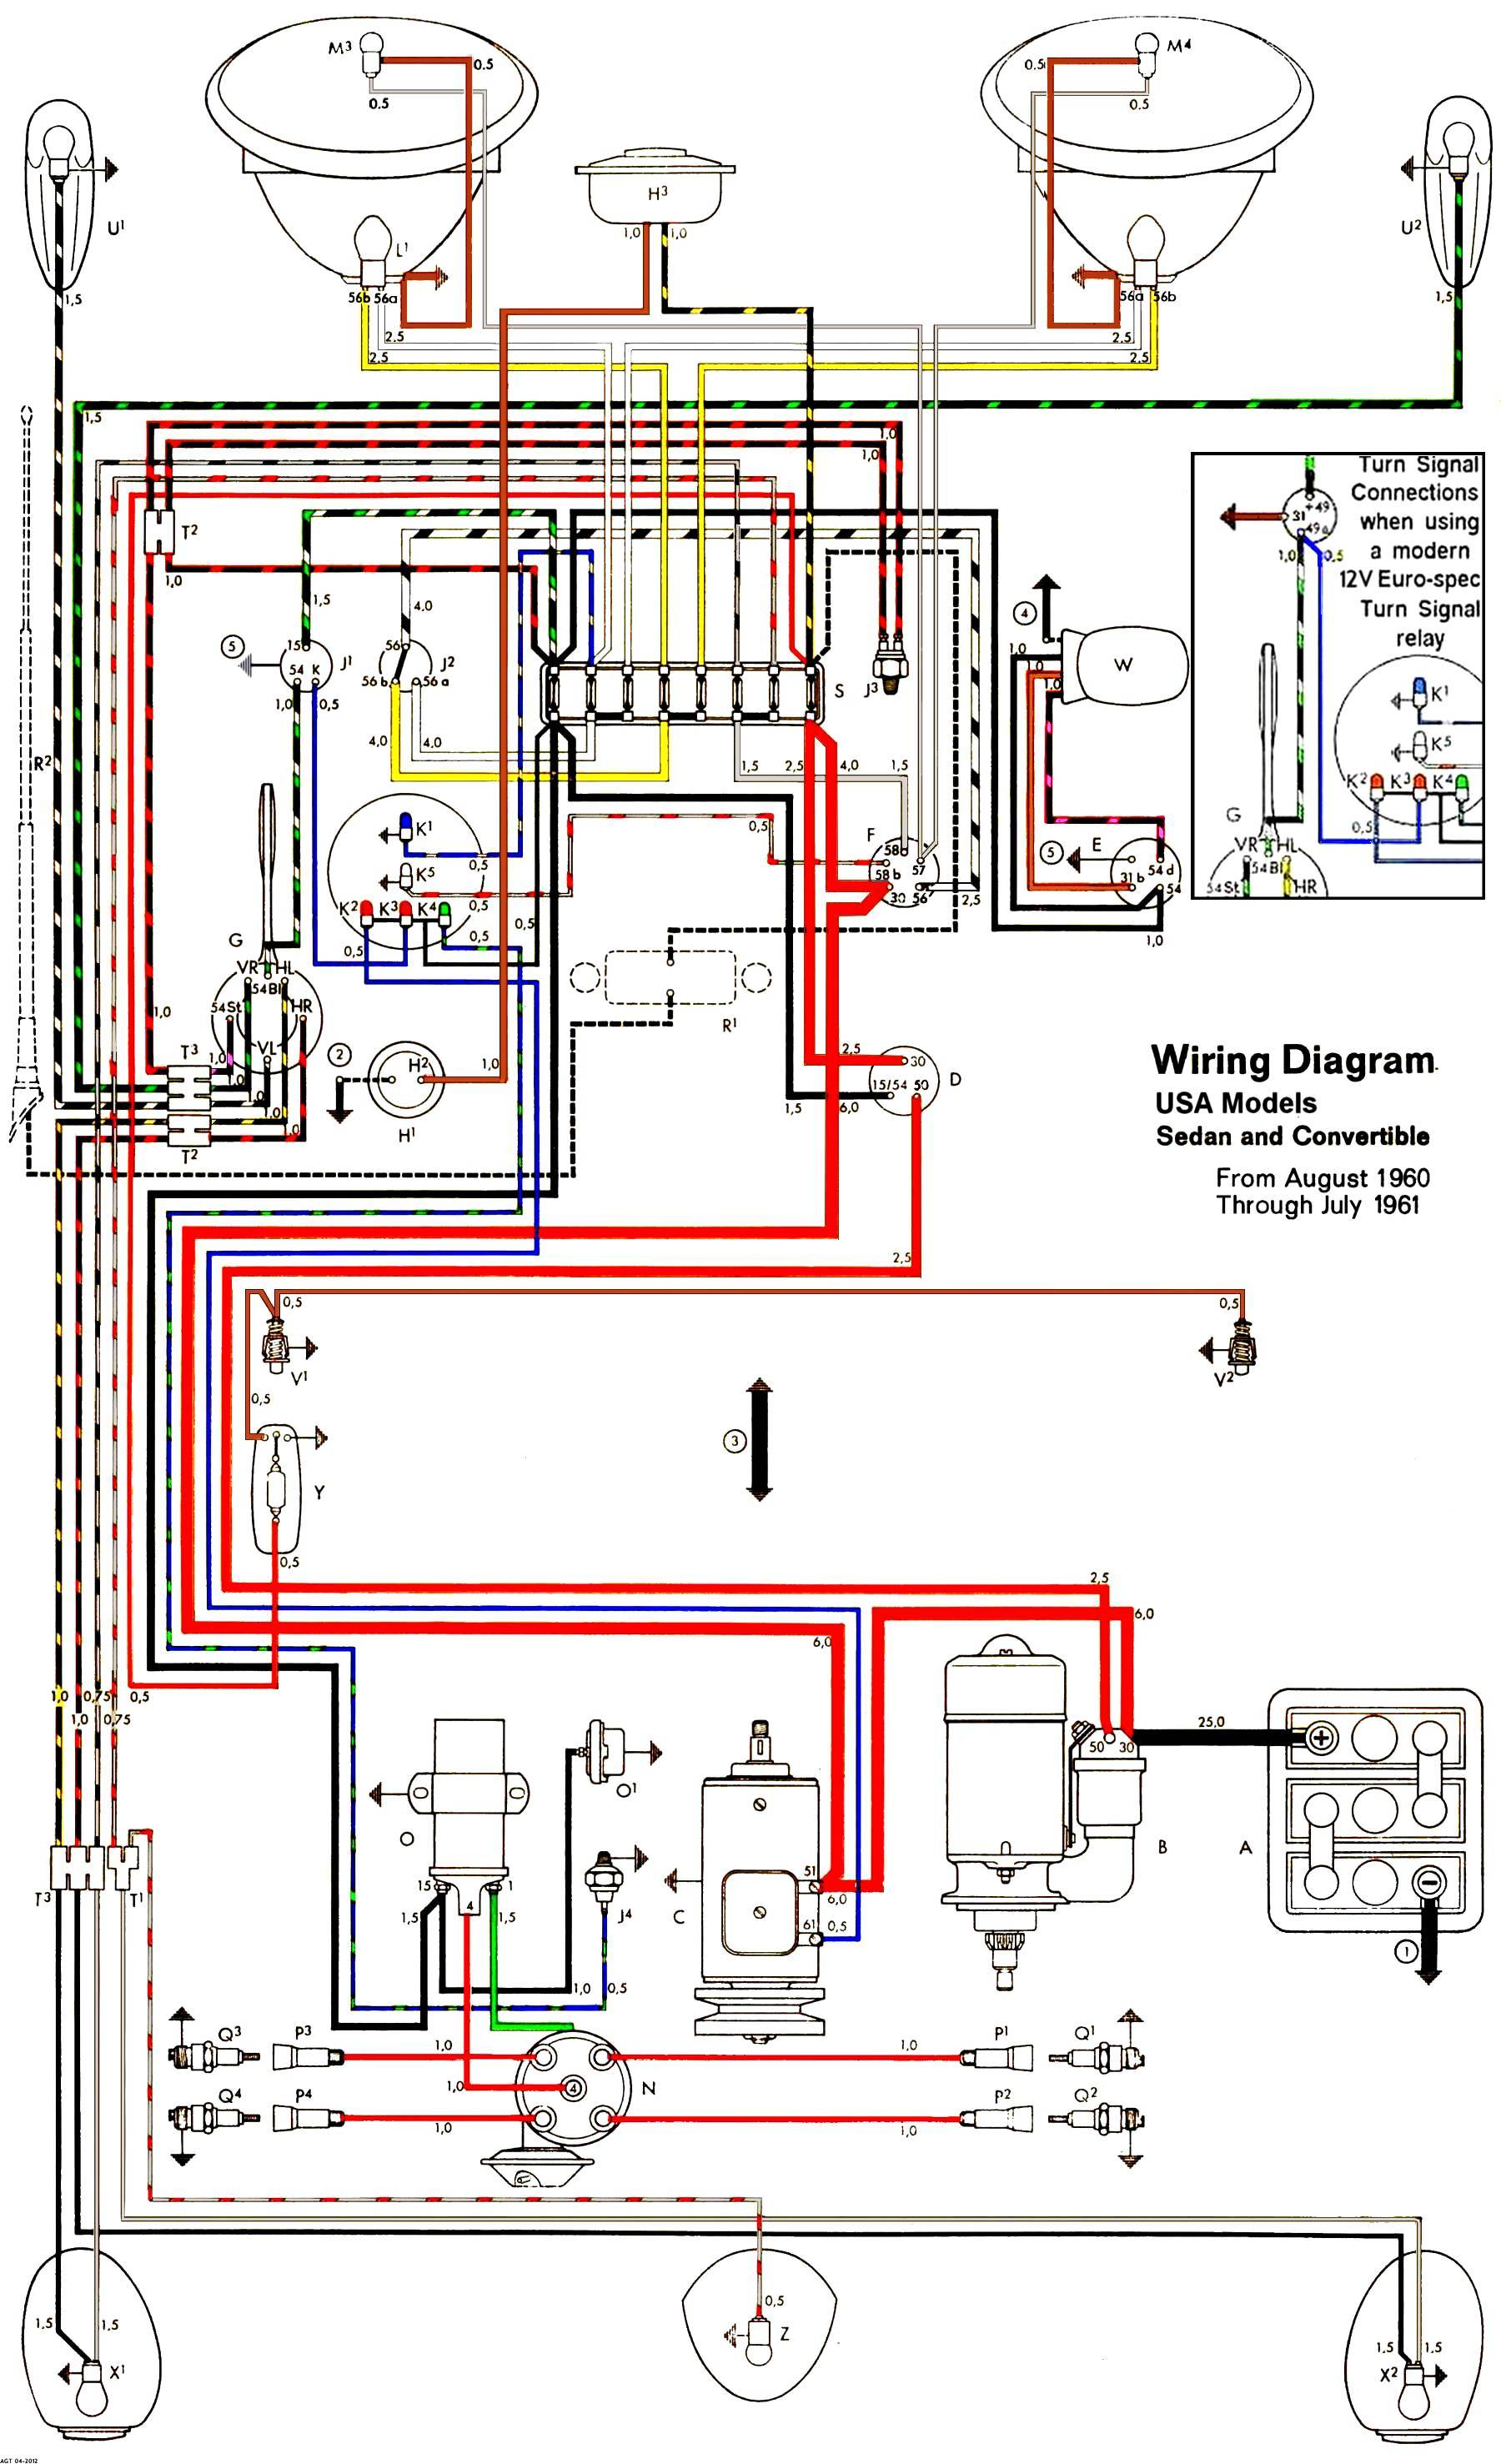 Thesamba Com Type 1 Wiring Diagrams 1970 Vw Bus Wiring Diagram 1970 Vw Wiring  Diagram